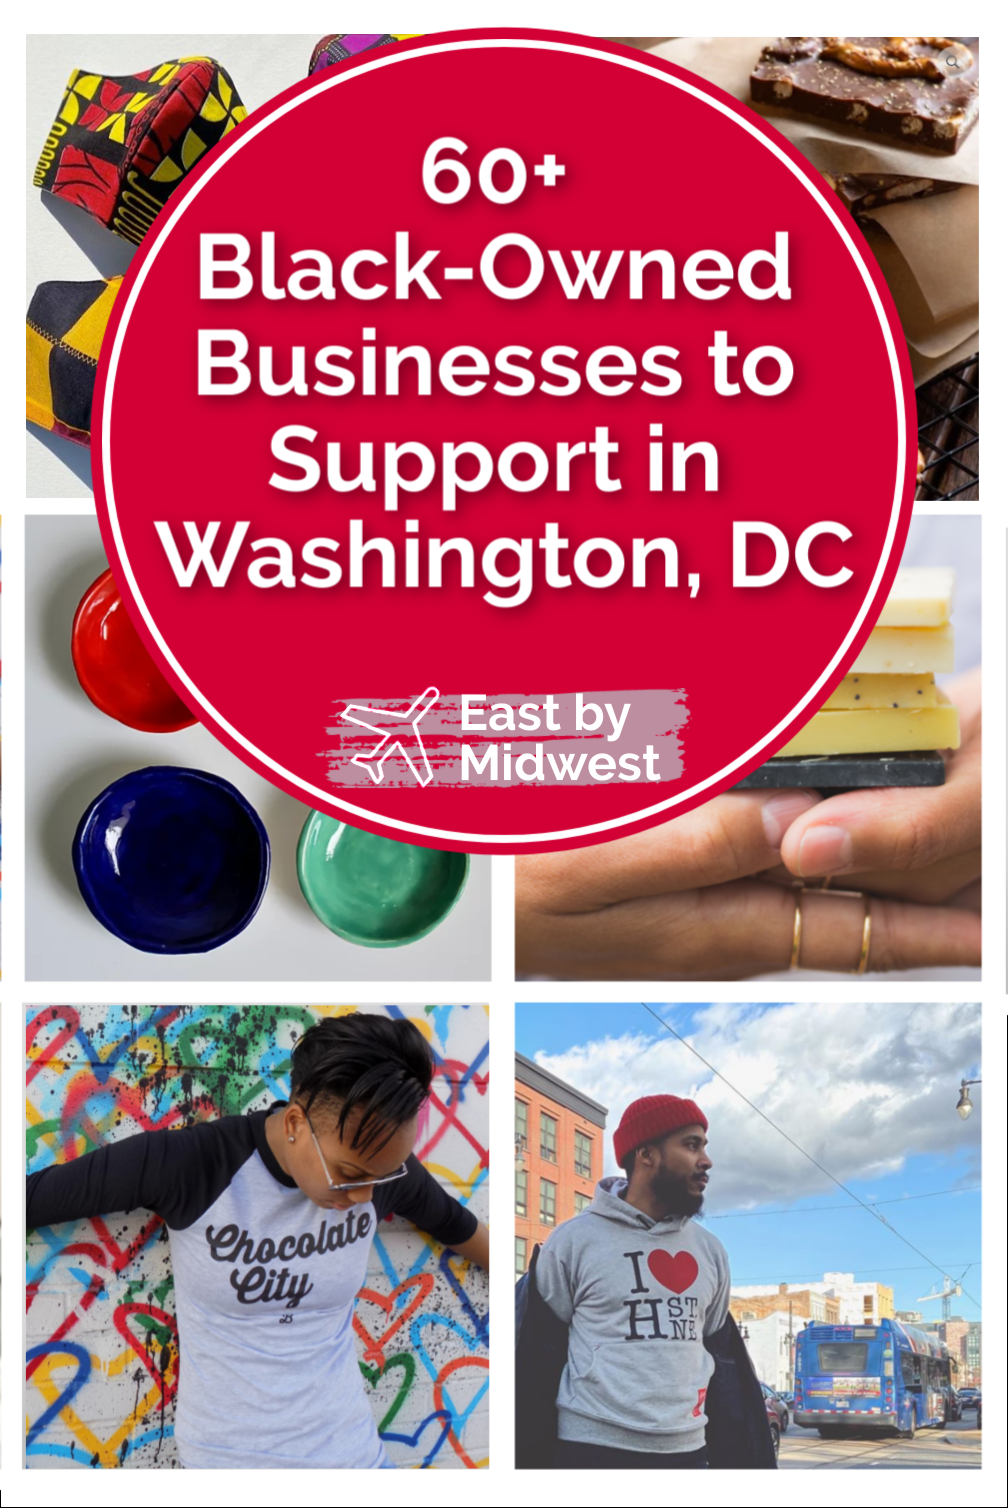 60+ Black-Owned Businesses to Support in Washington, DC